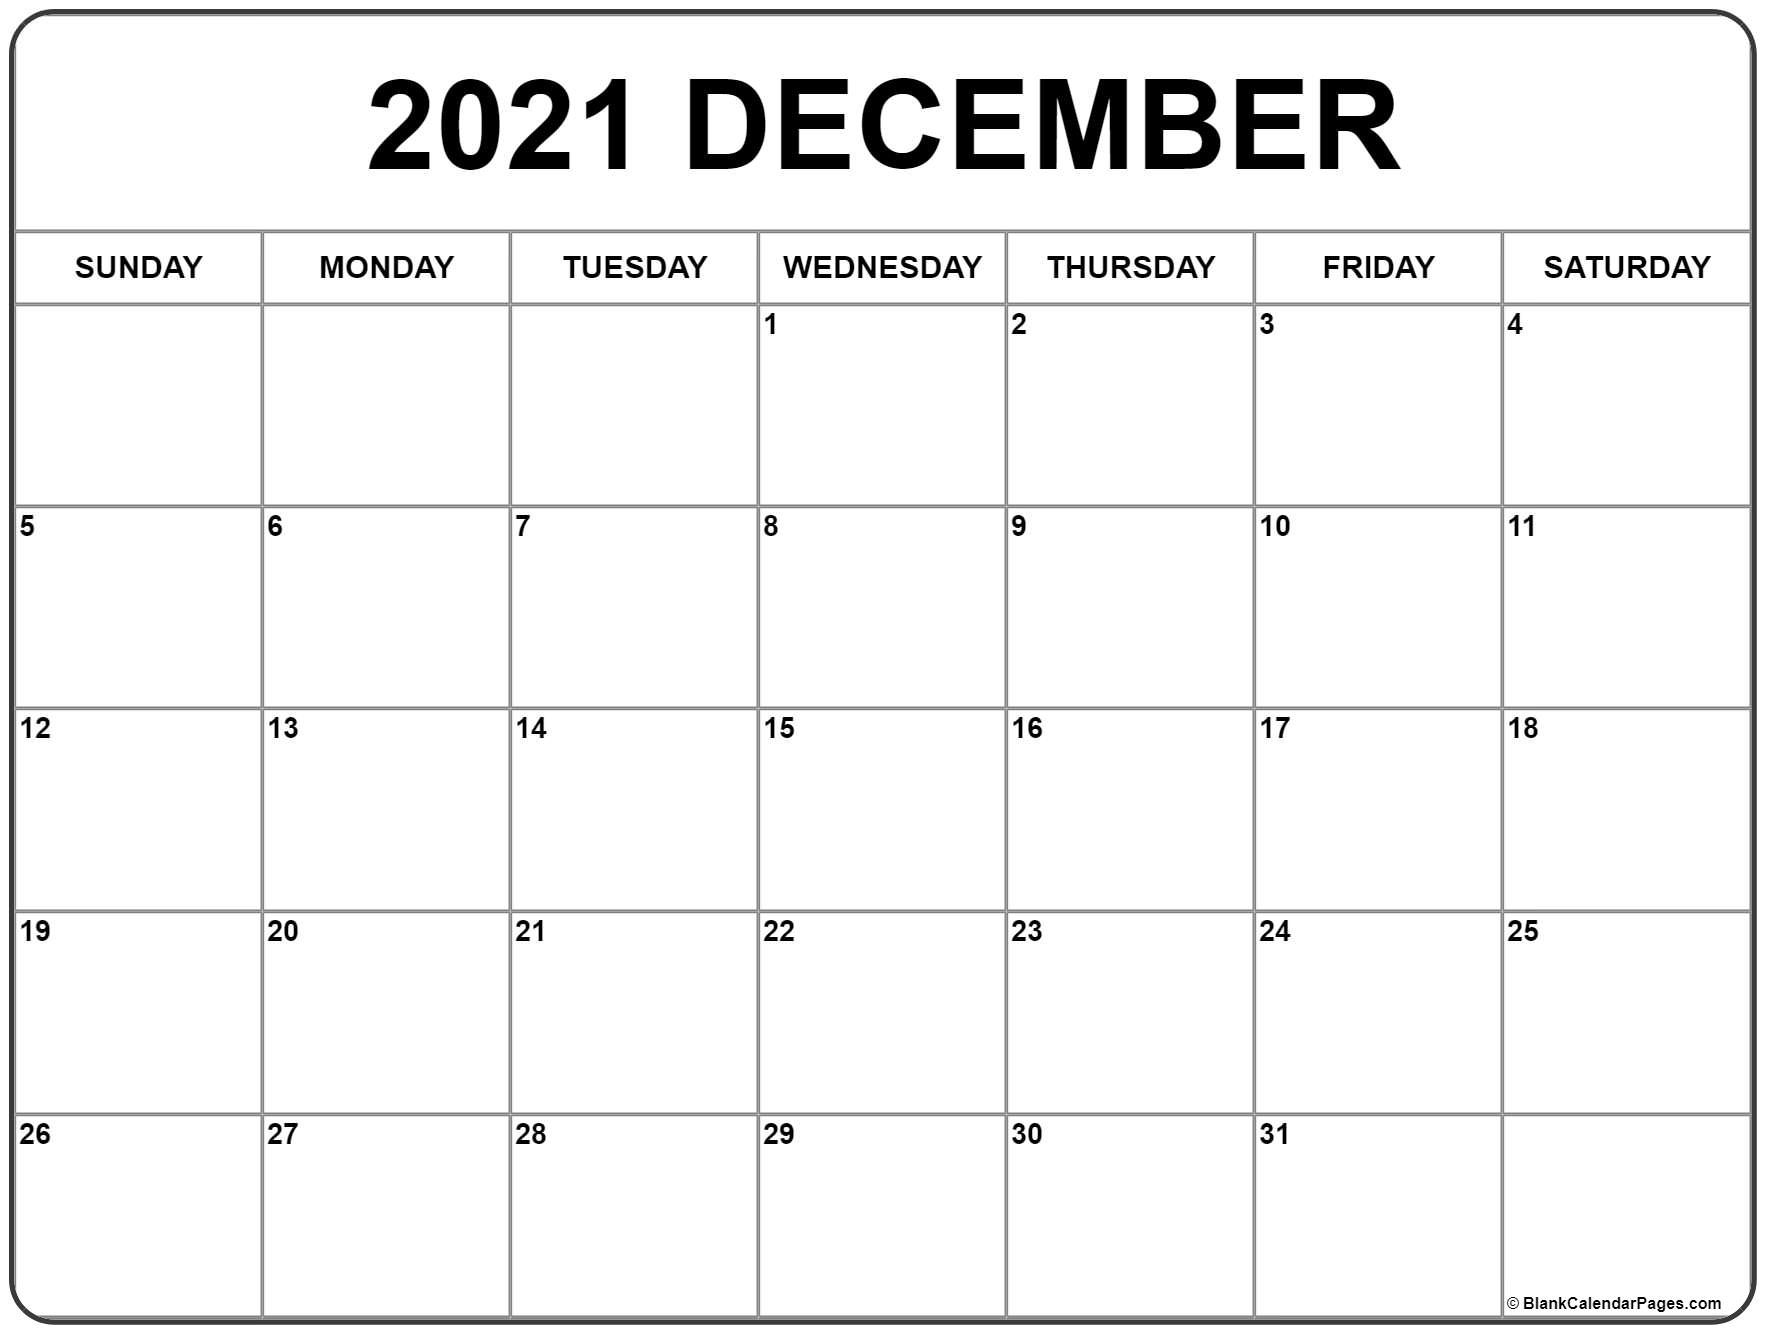 Christmas Theme Calendar December 2020 December 2020 calendar | free printable monthly calendars